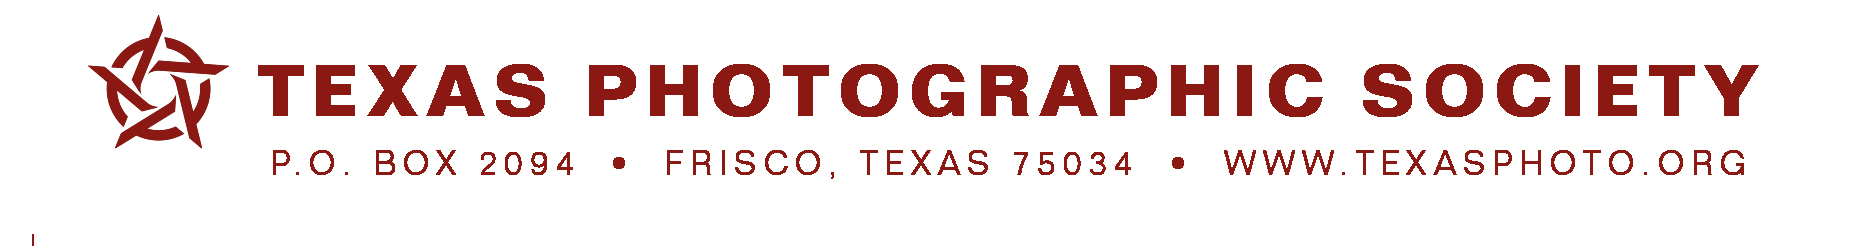 Texas Photographic Society – TPS 25: The International Competition - logo